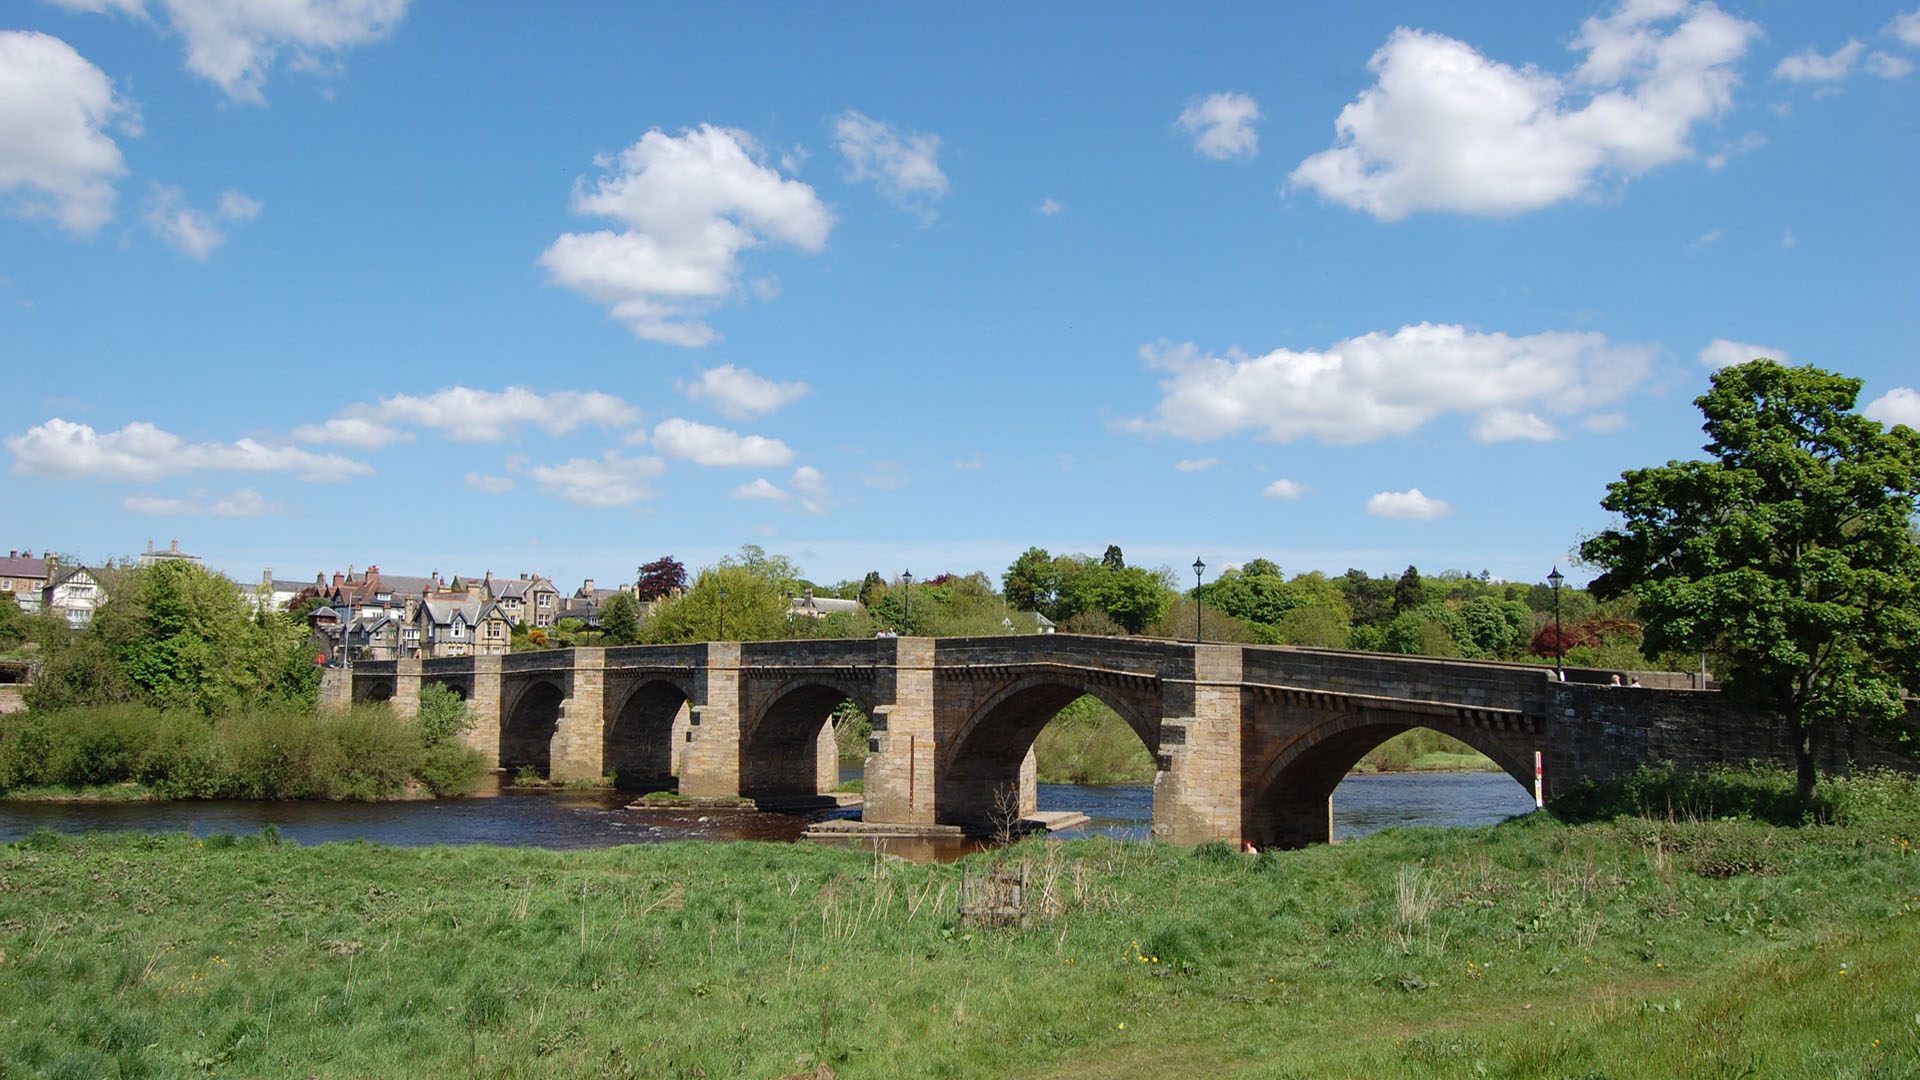 Corbridge Bridge Corbridge Village Tynedale Northumberland